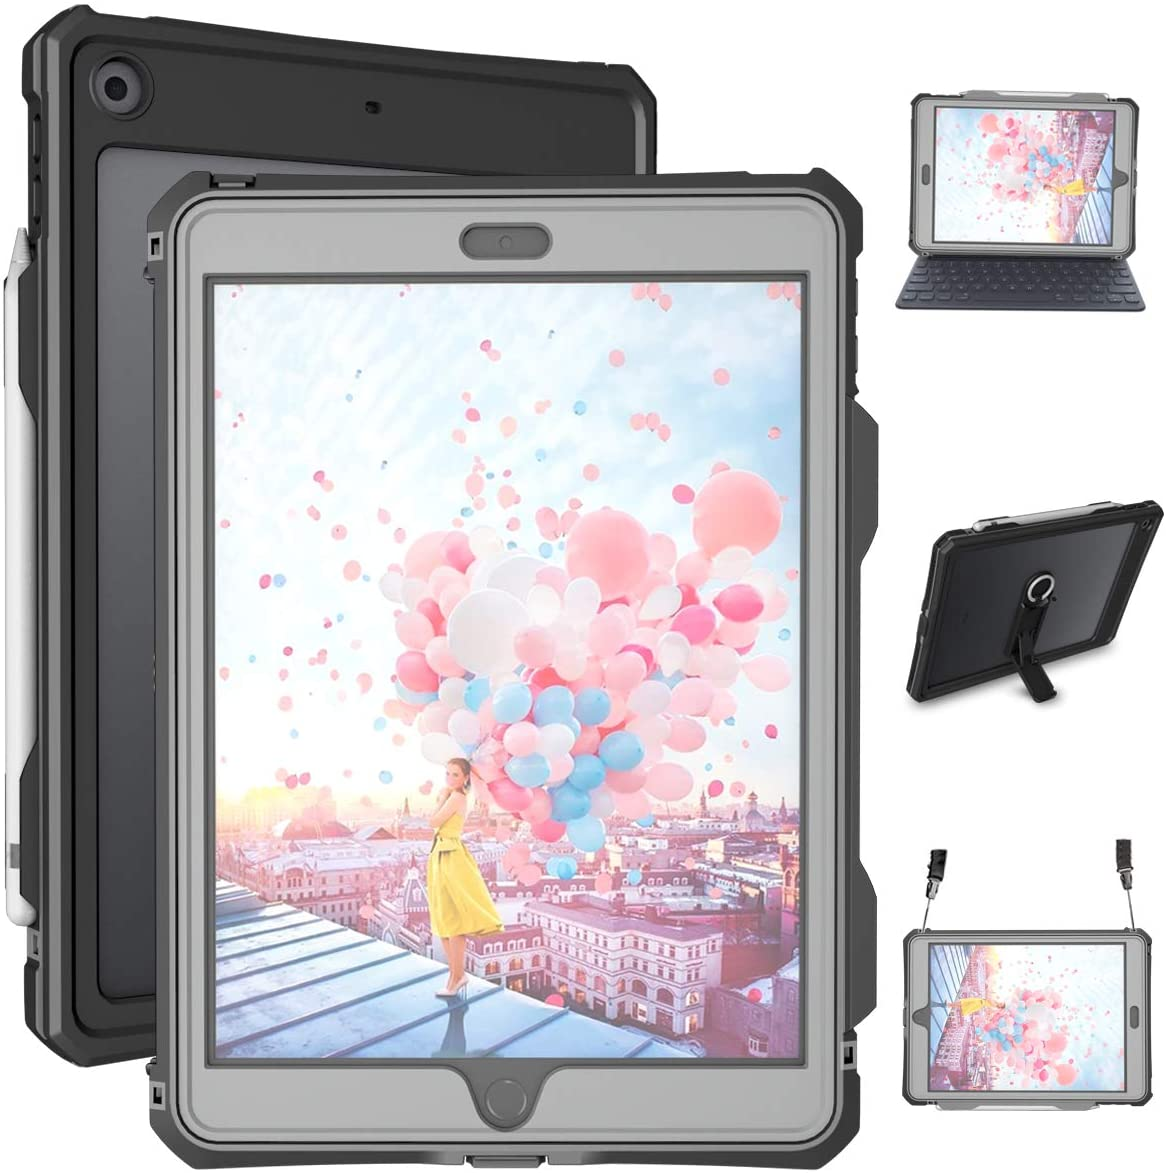 iPad 10.2 Case - Waterproof iPad 7th Generation Case 2019 Full Body Protection Bumper Case for iPad 7 gen 10.2 inches Shockproof Anti-Scratch with Strap Stand Pencil Holder